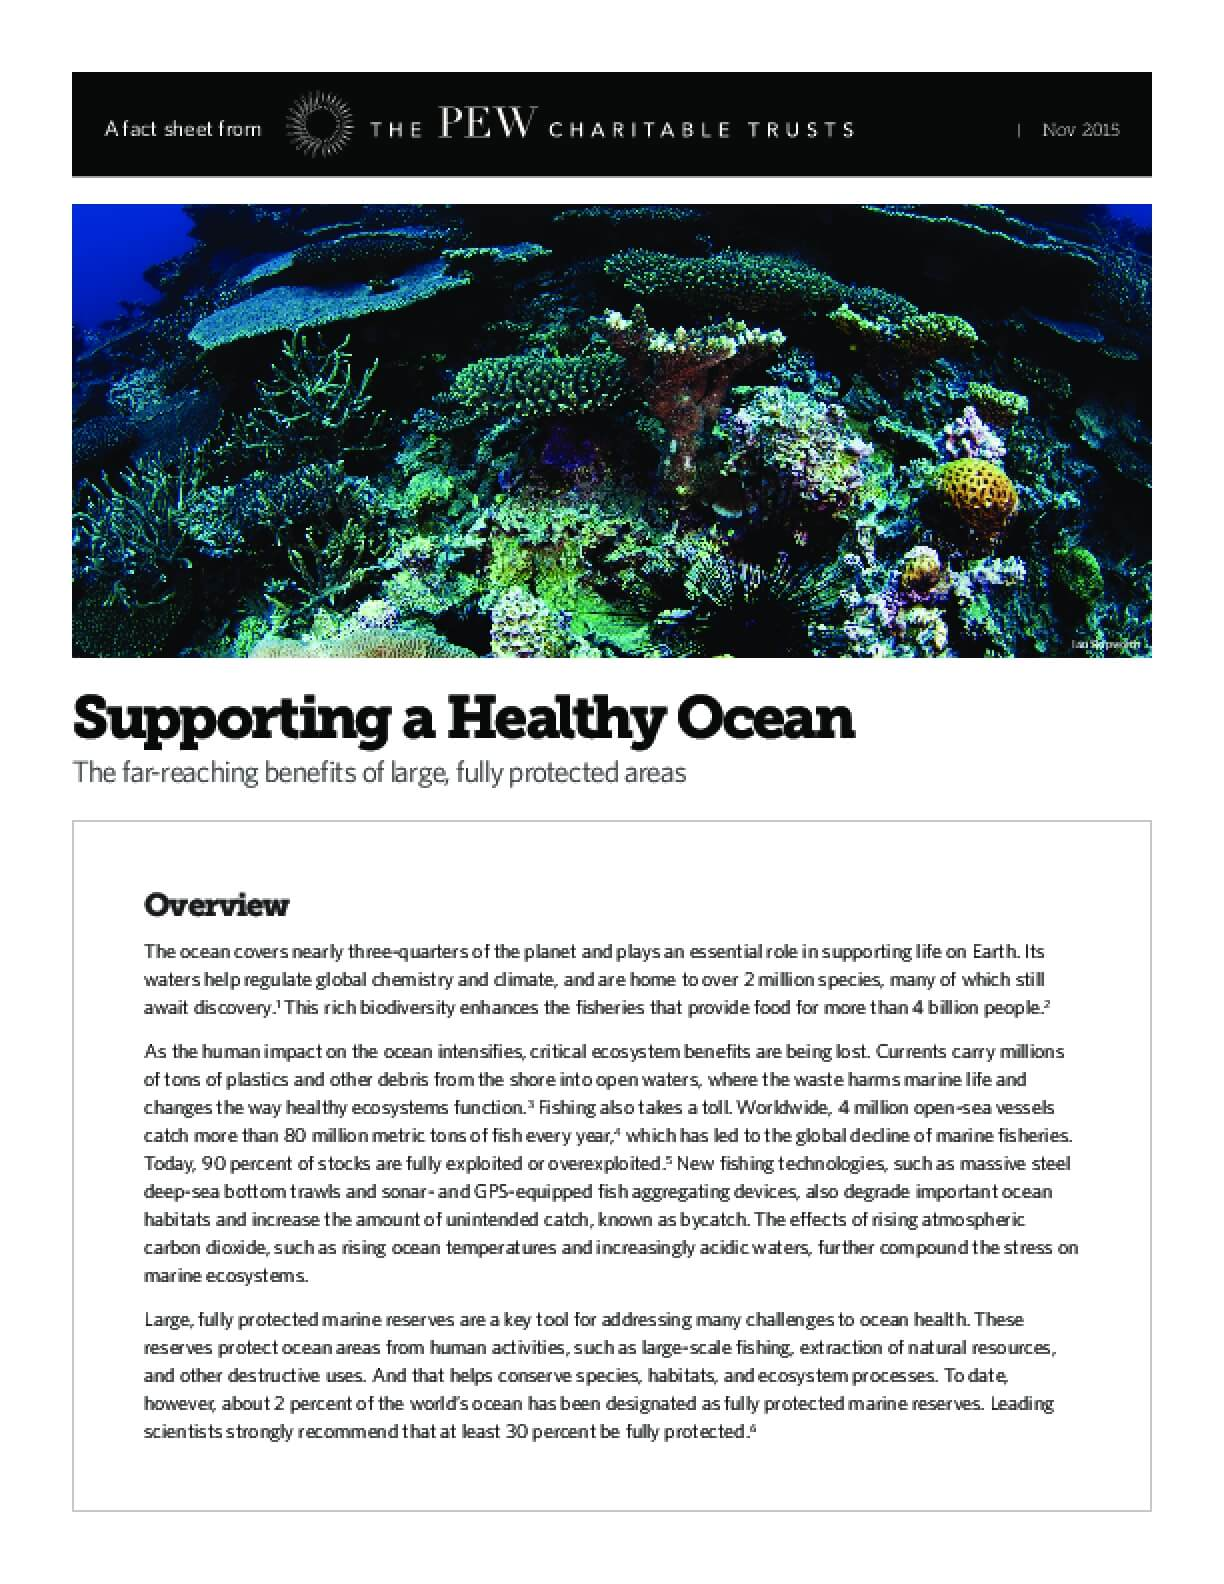 Supporting a Healthy Ocean: The Far-reaching Benefits of Large, Fully Protected Areas